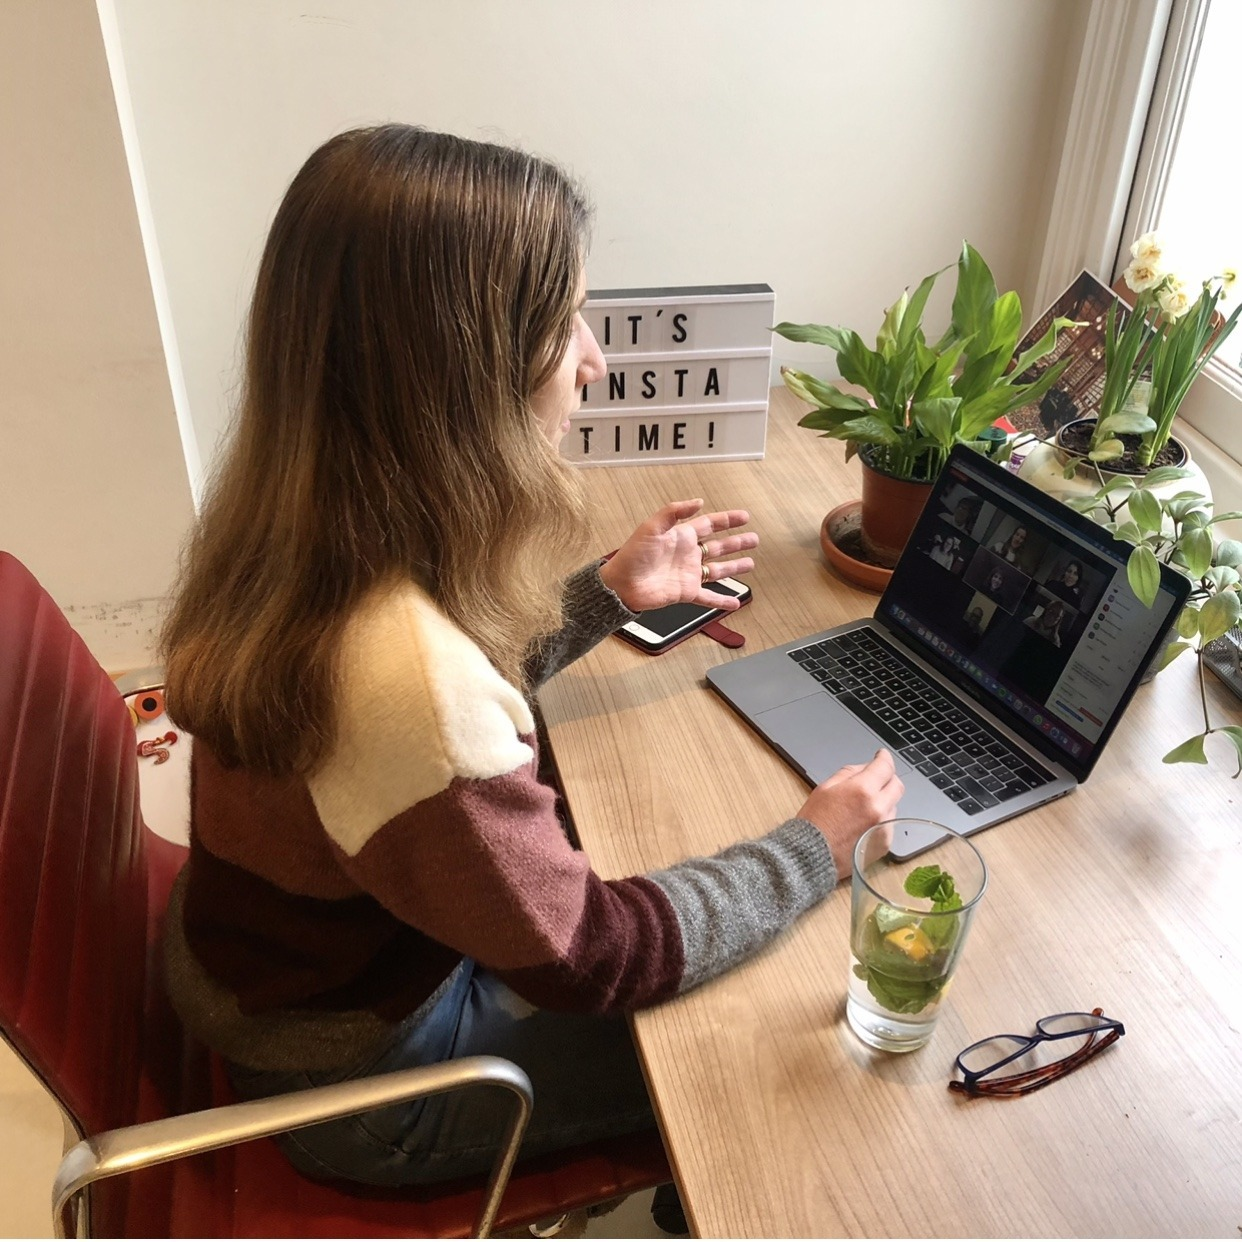 Anna Skipwith teaching a Zoom class about Instagram in her home office